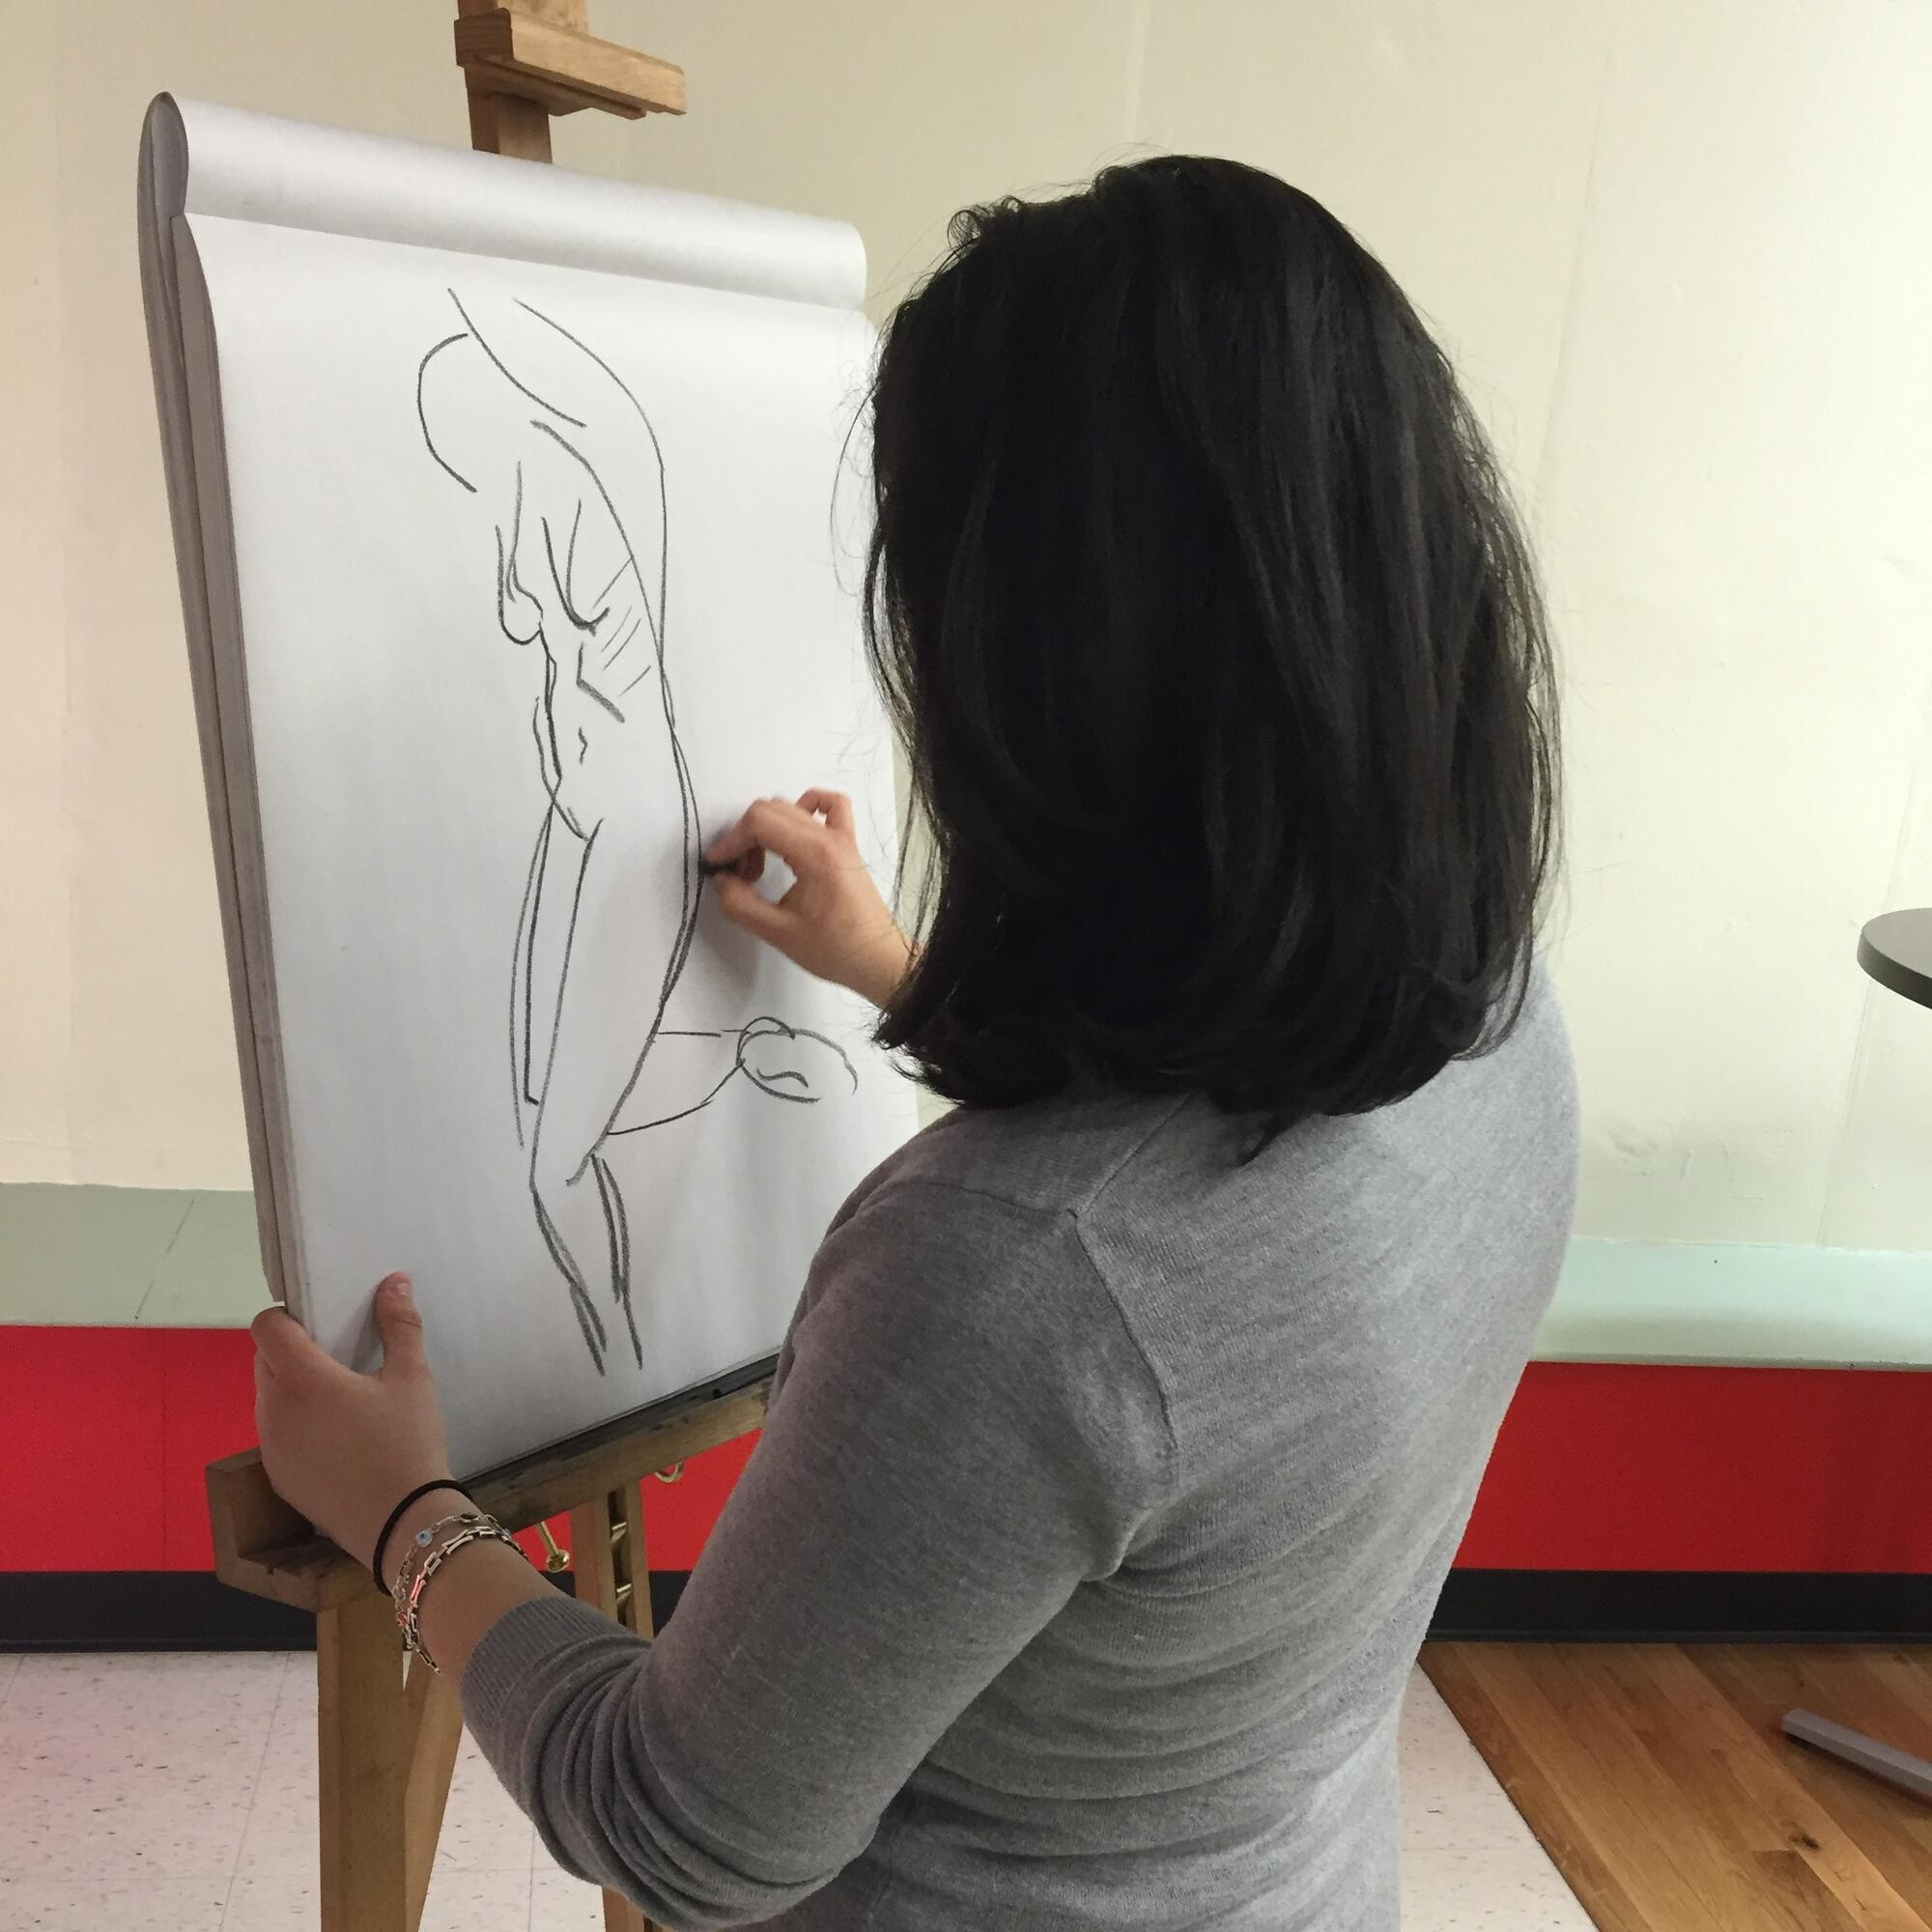 Student at easel sketching a figure